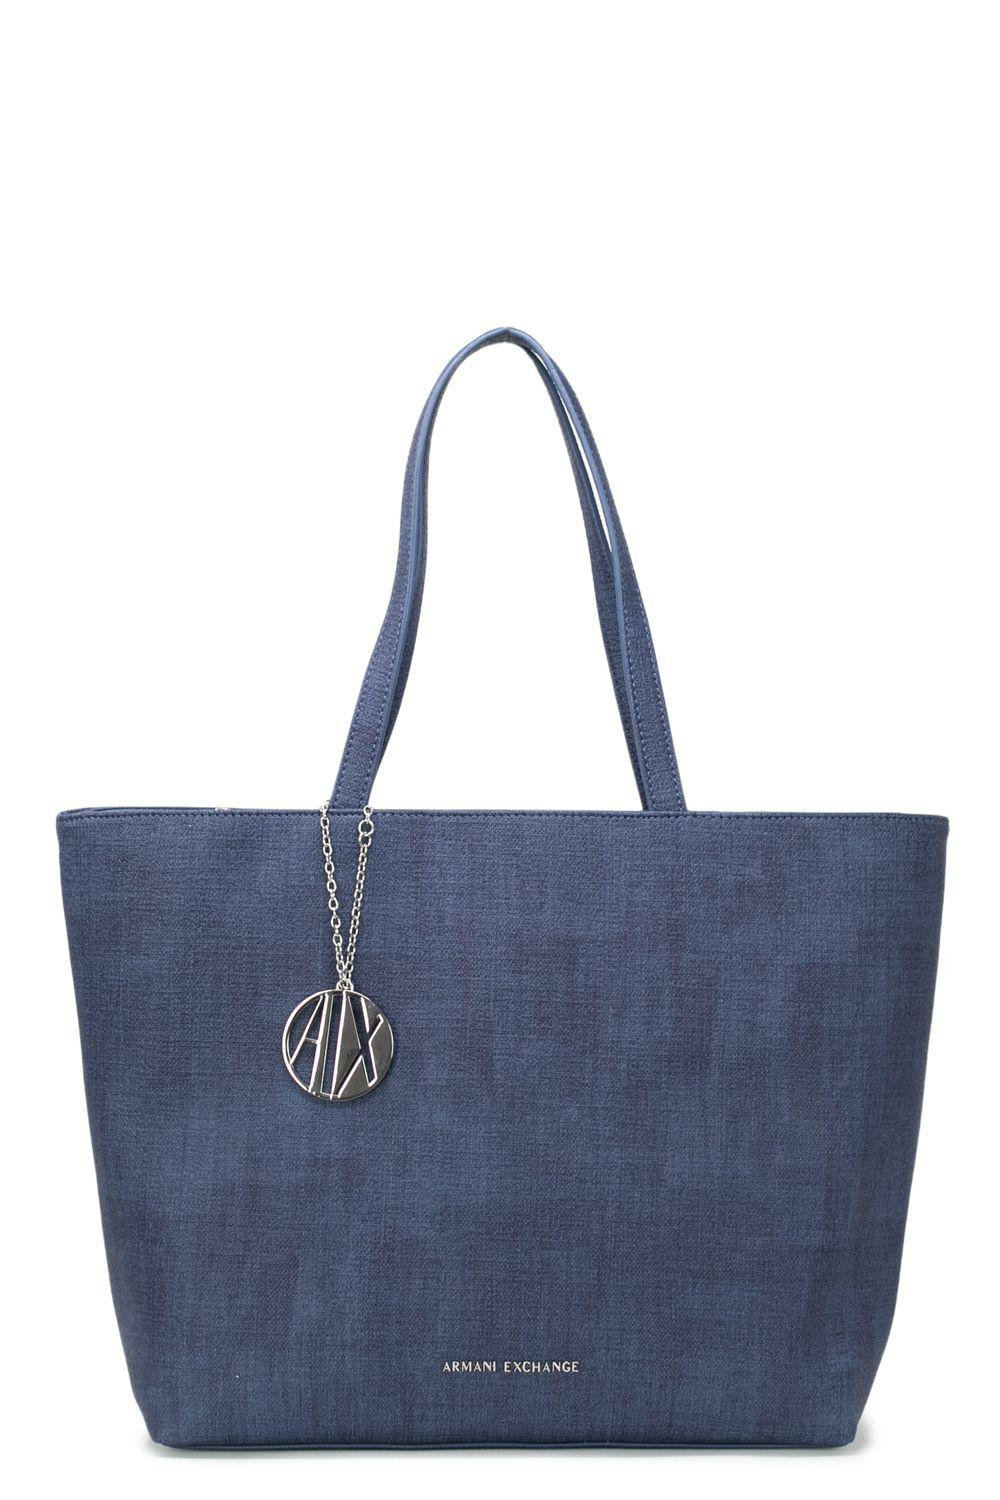 1d8575b8b0ed Armani Exchange - Women s Blue Polyester Tote - Lyst. View fullscreen